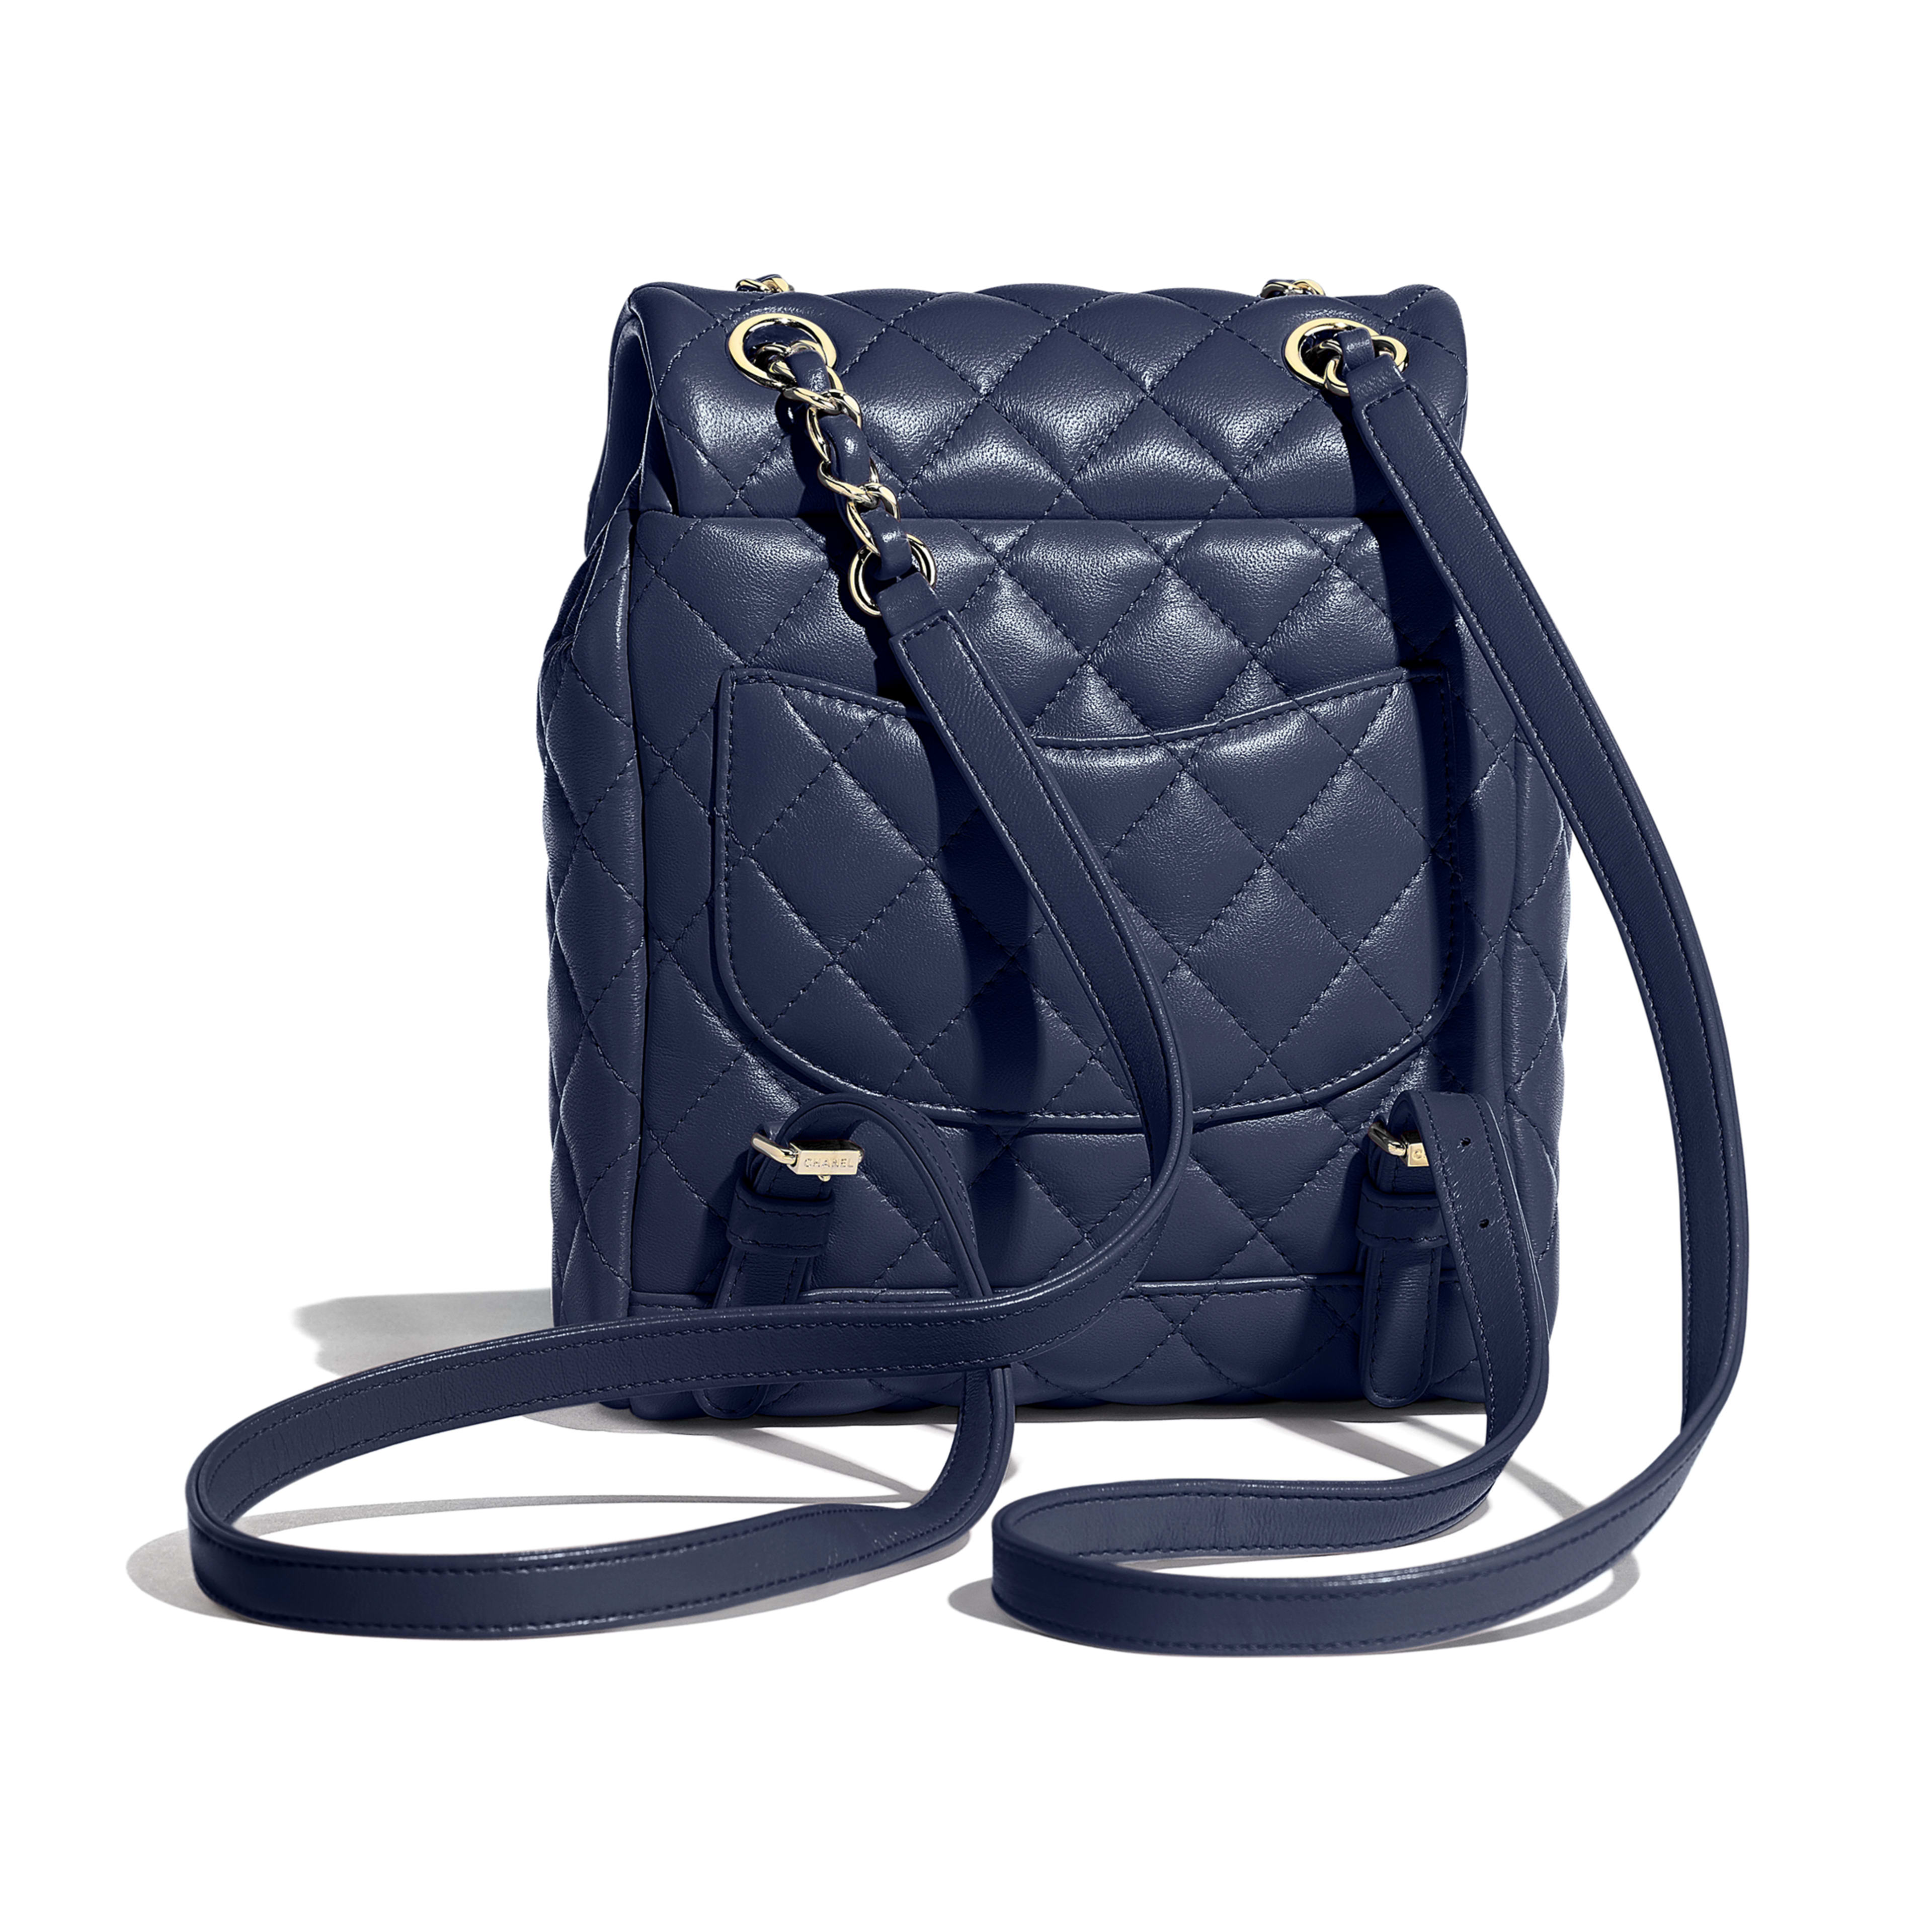 Backpack - Navy Blue - Lambskin & Gold-Tone Metal - Alternative view - see full sized version